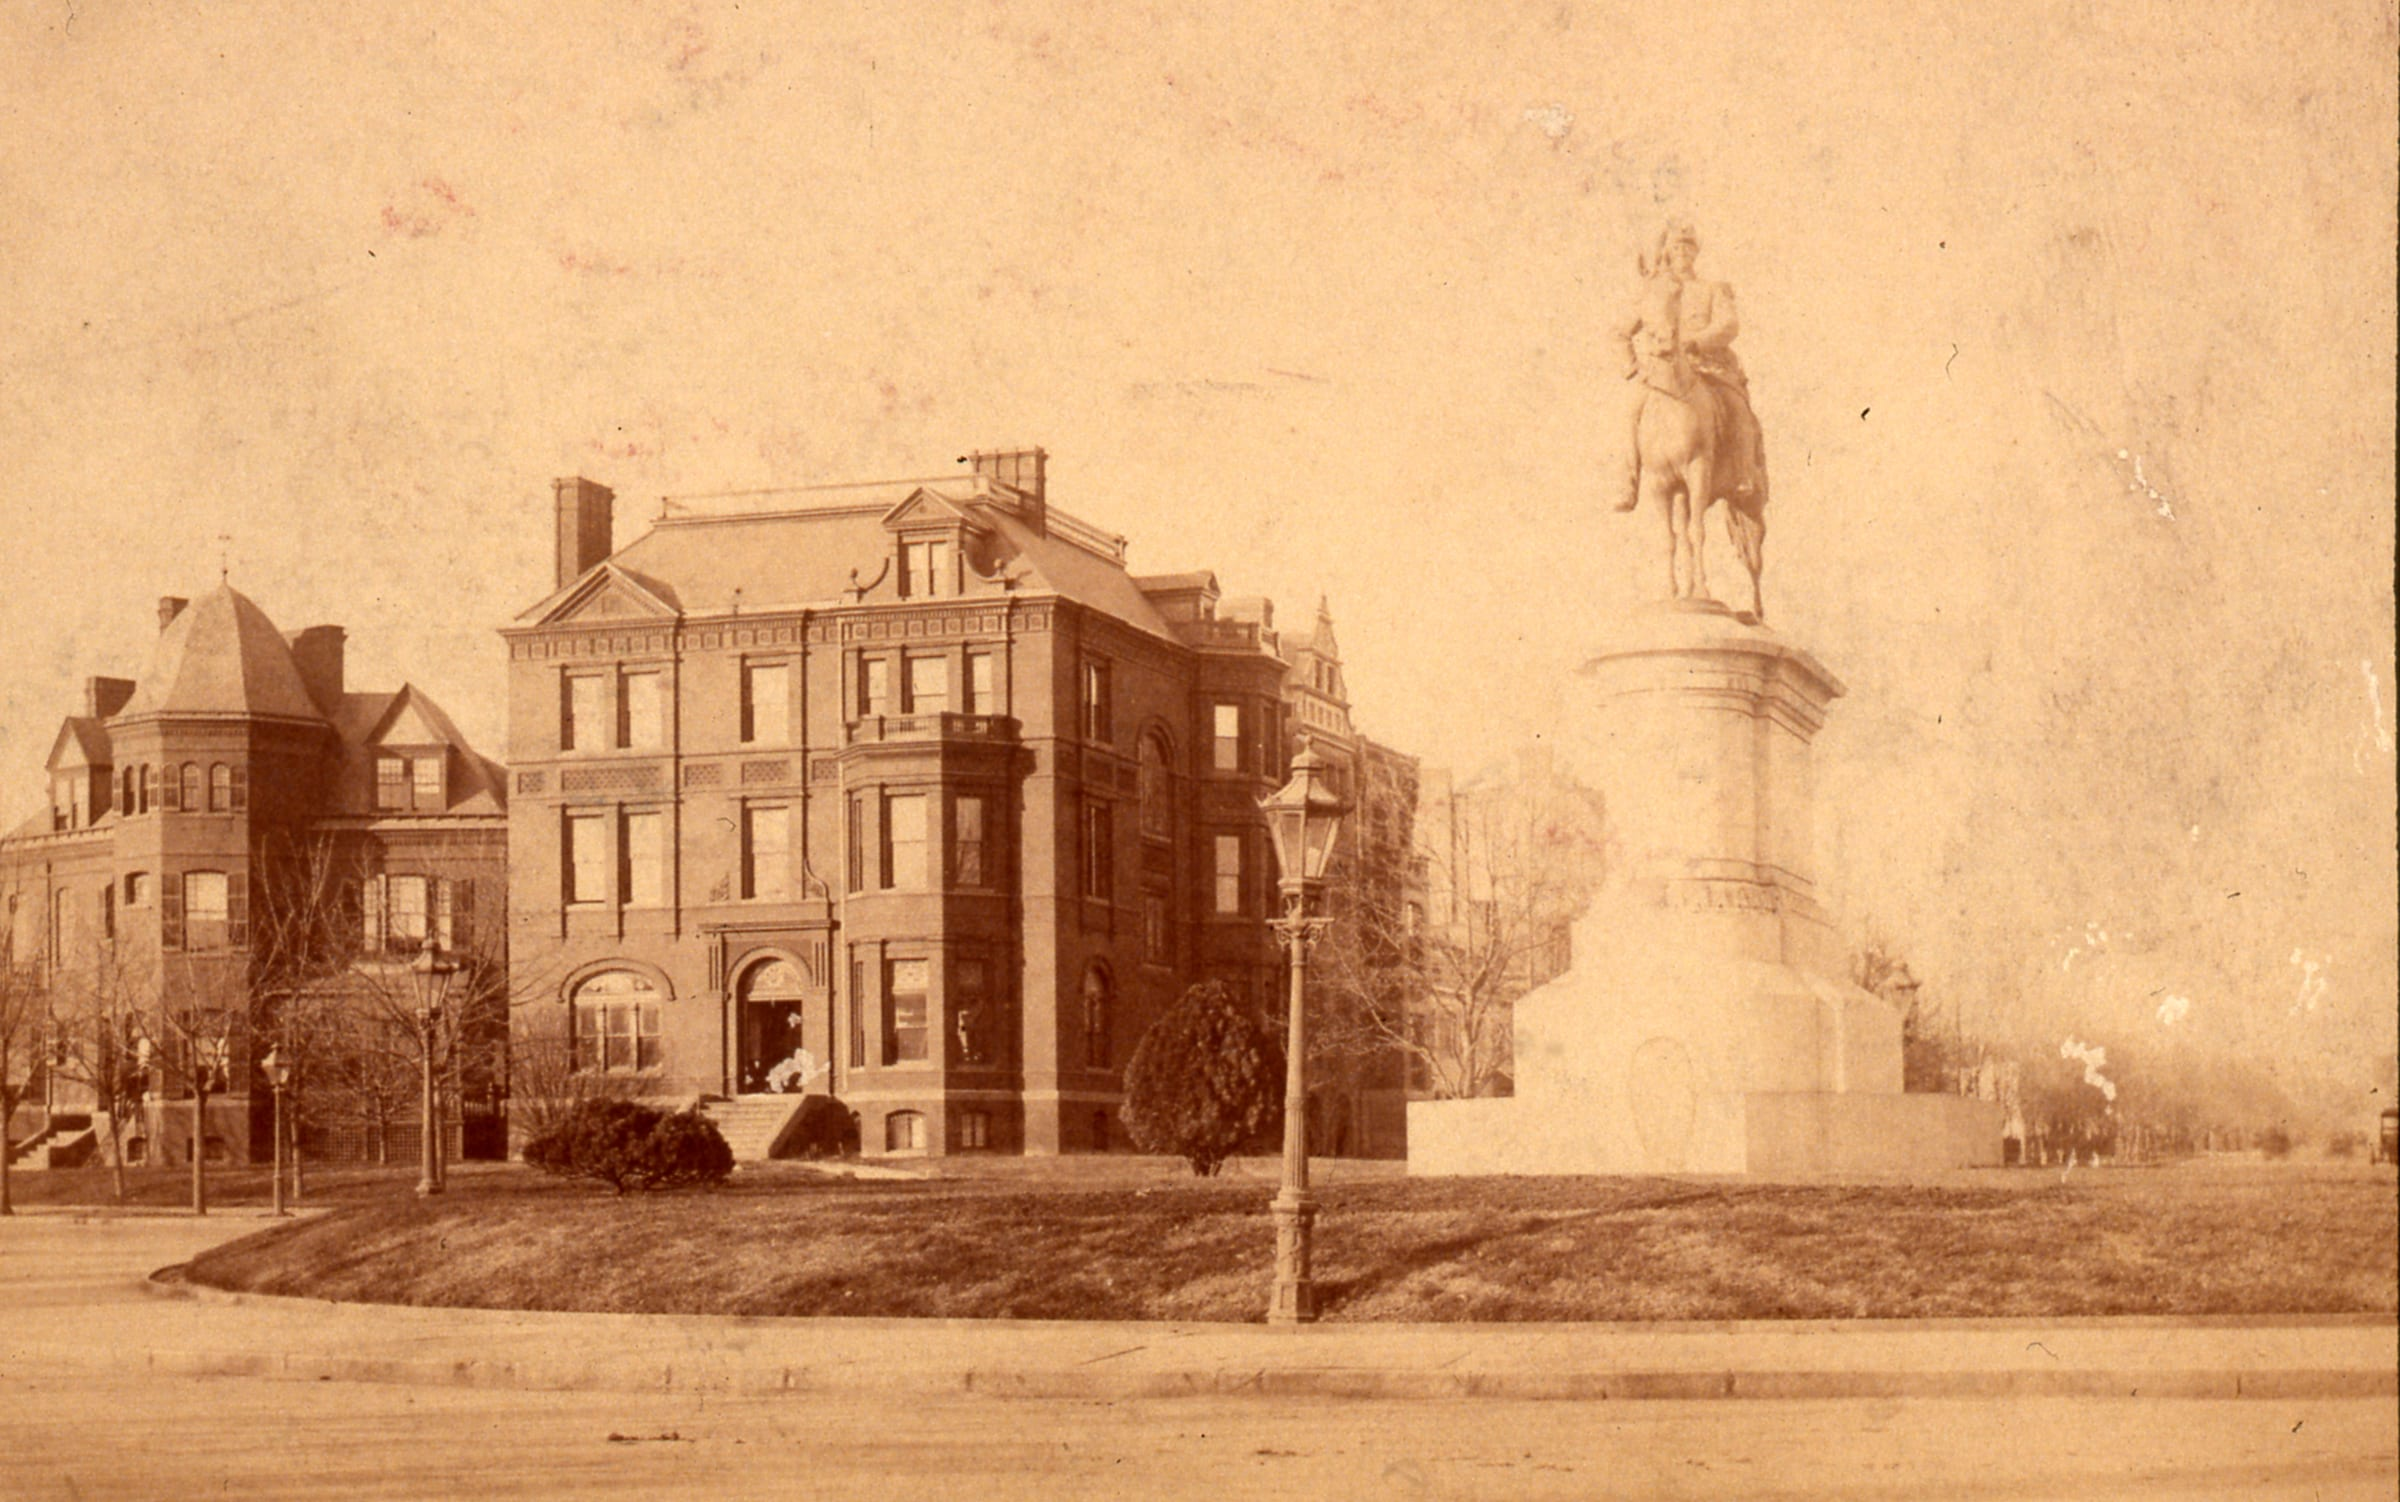 View northwest past the equestrian statue (by Henry Kirke Brown) of General Winfield Scott. Includes the Queen Anne-style Windom House on the northwest corner of Massachusetts Avenue and 16th Street NW, and the Hutchins House next door to the west. (Current site of the Australian Embassy). William H. Seaman Photograph Collection, HSW (1888)